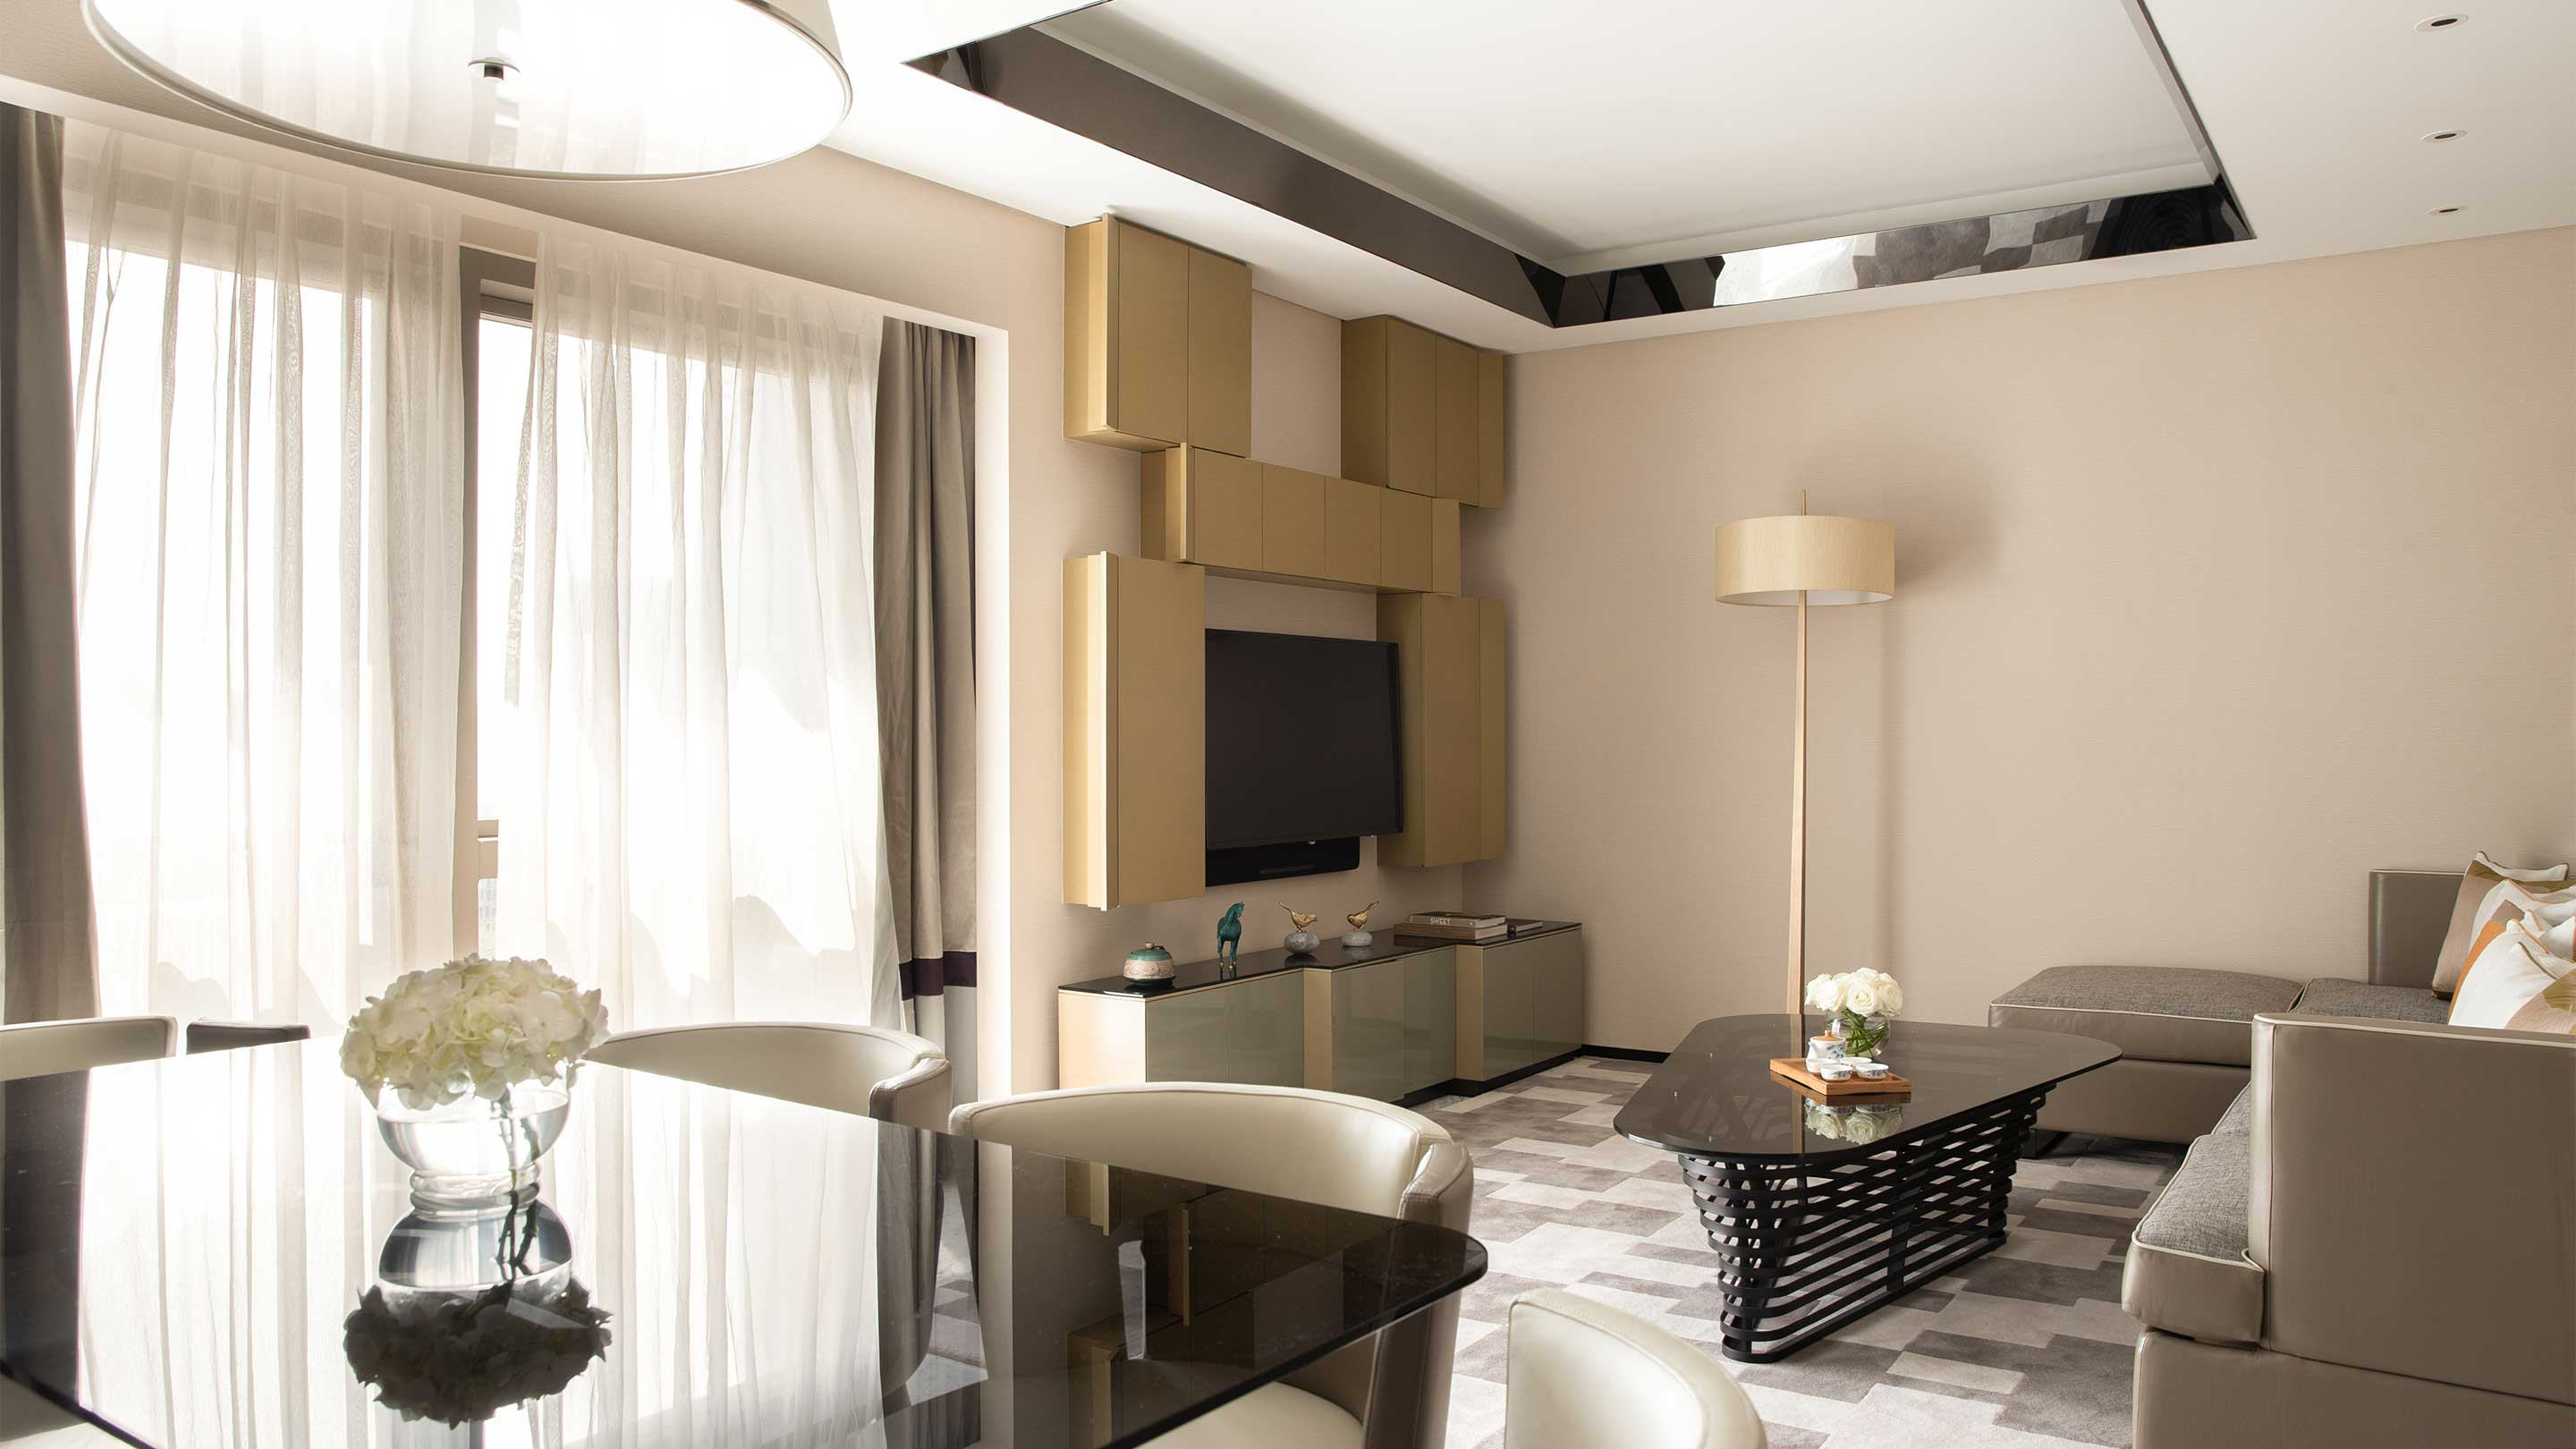 16-9 JUMEIRAH LIVING GUANGZHOU Contemporary 3 bed room suite living room 1602